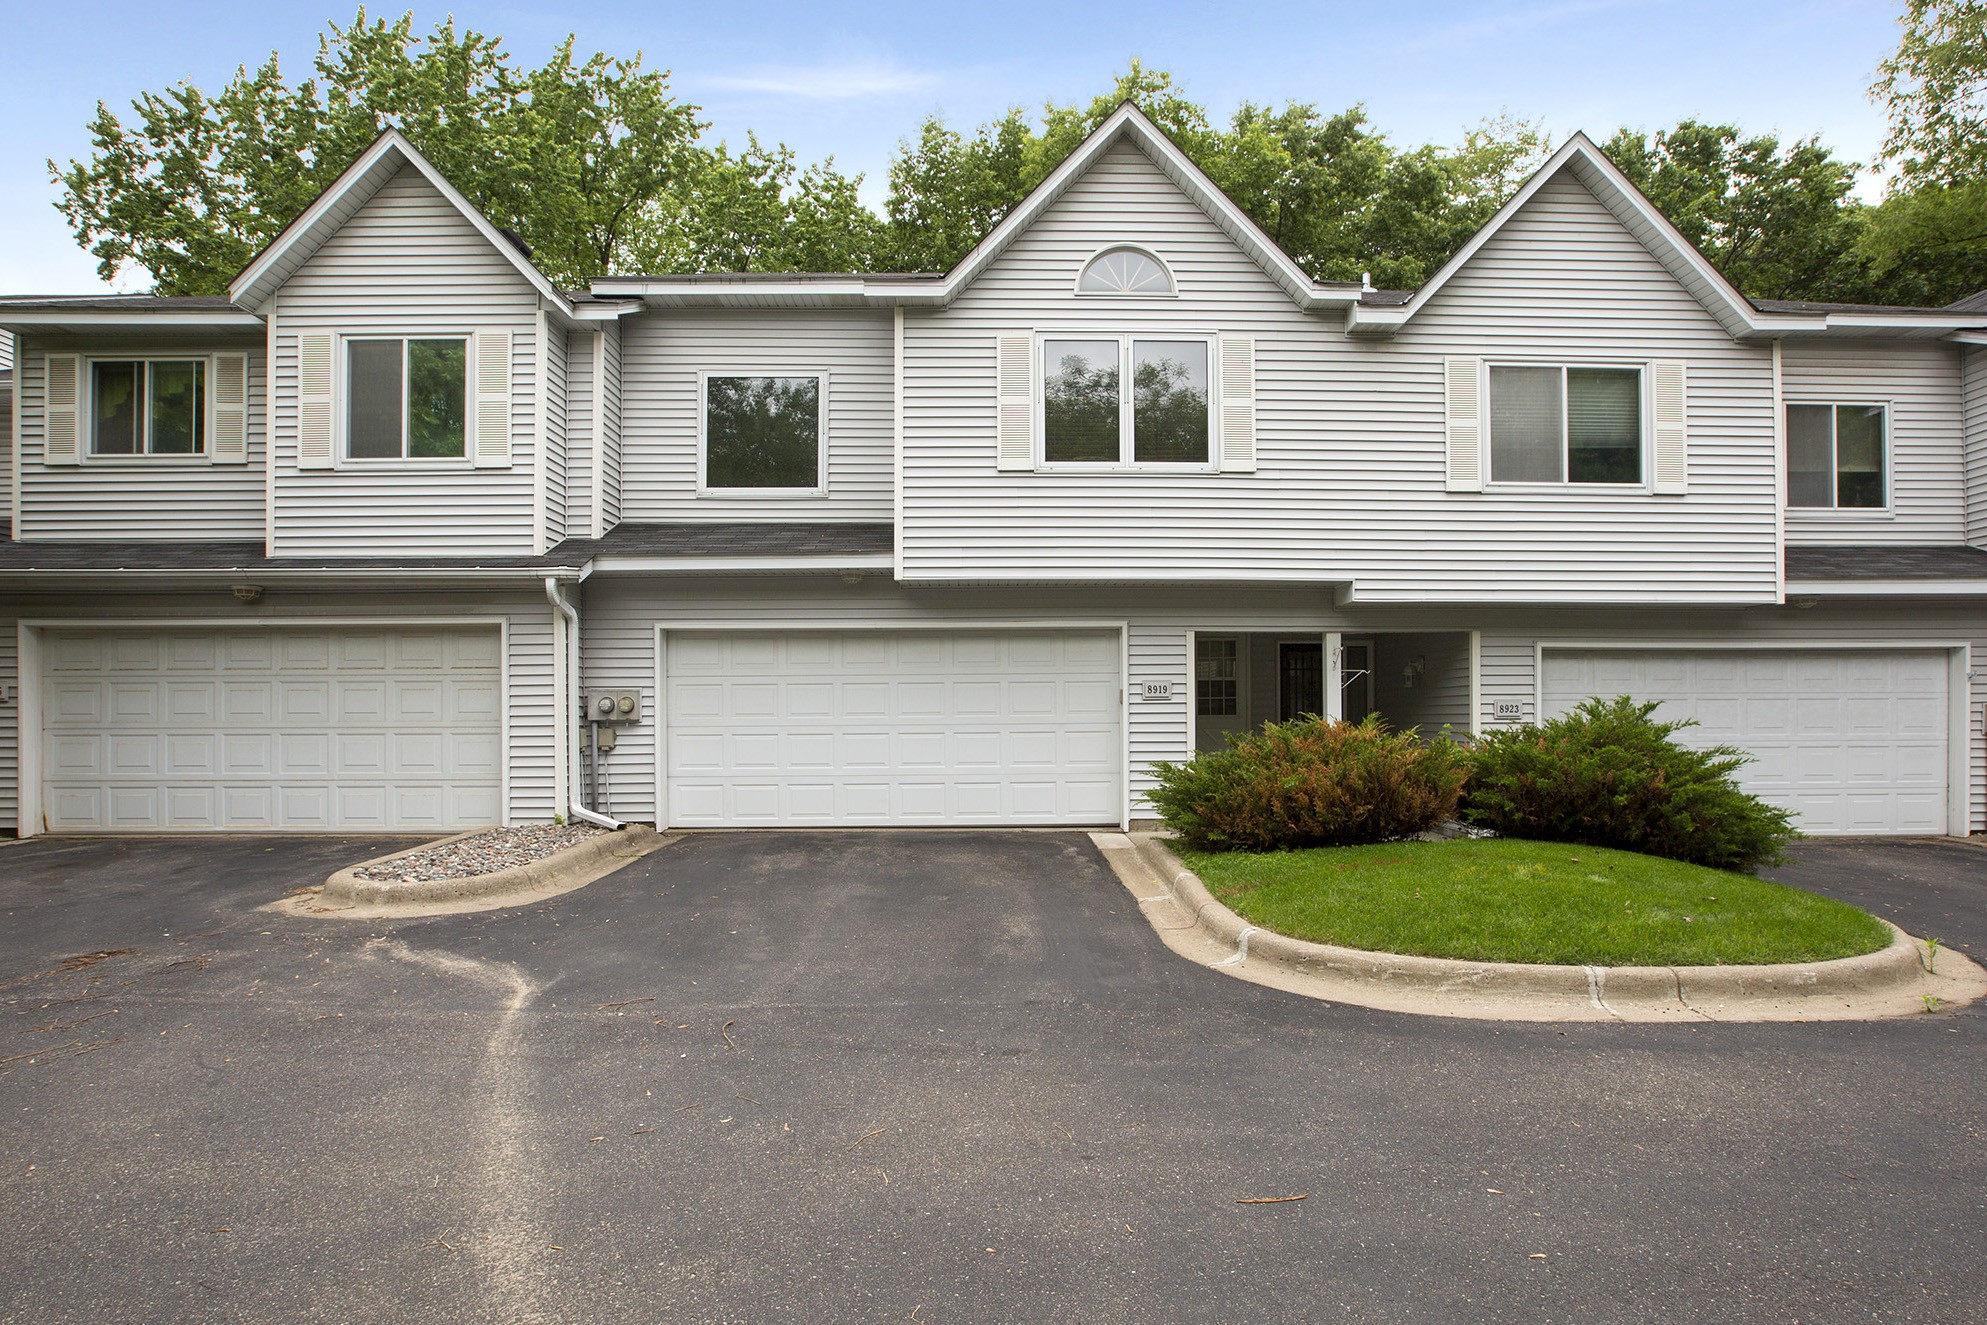 JUST LISTED! Coon Rapids townhome on wooded lot, under $150,000!